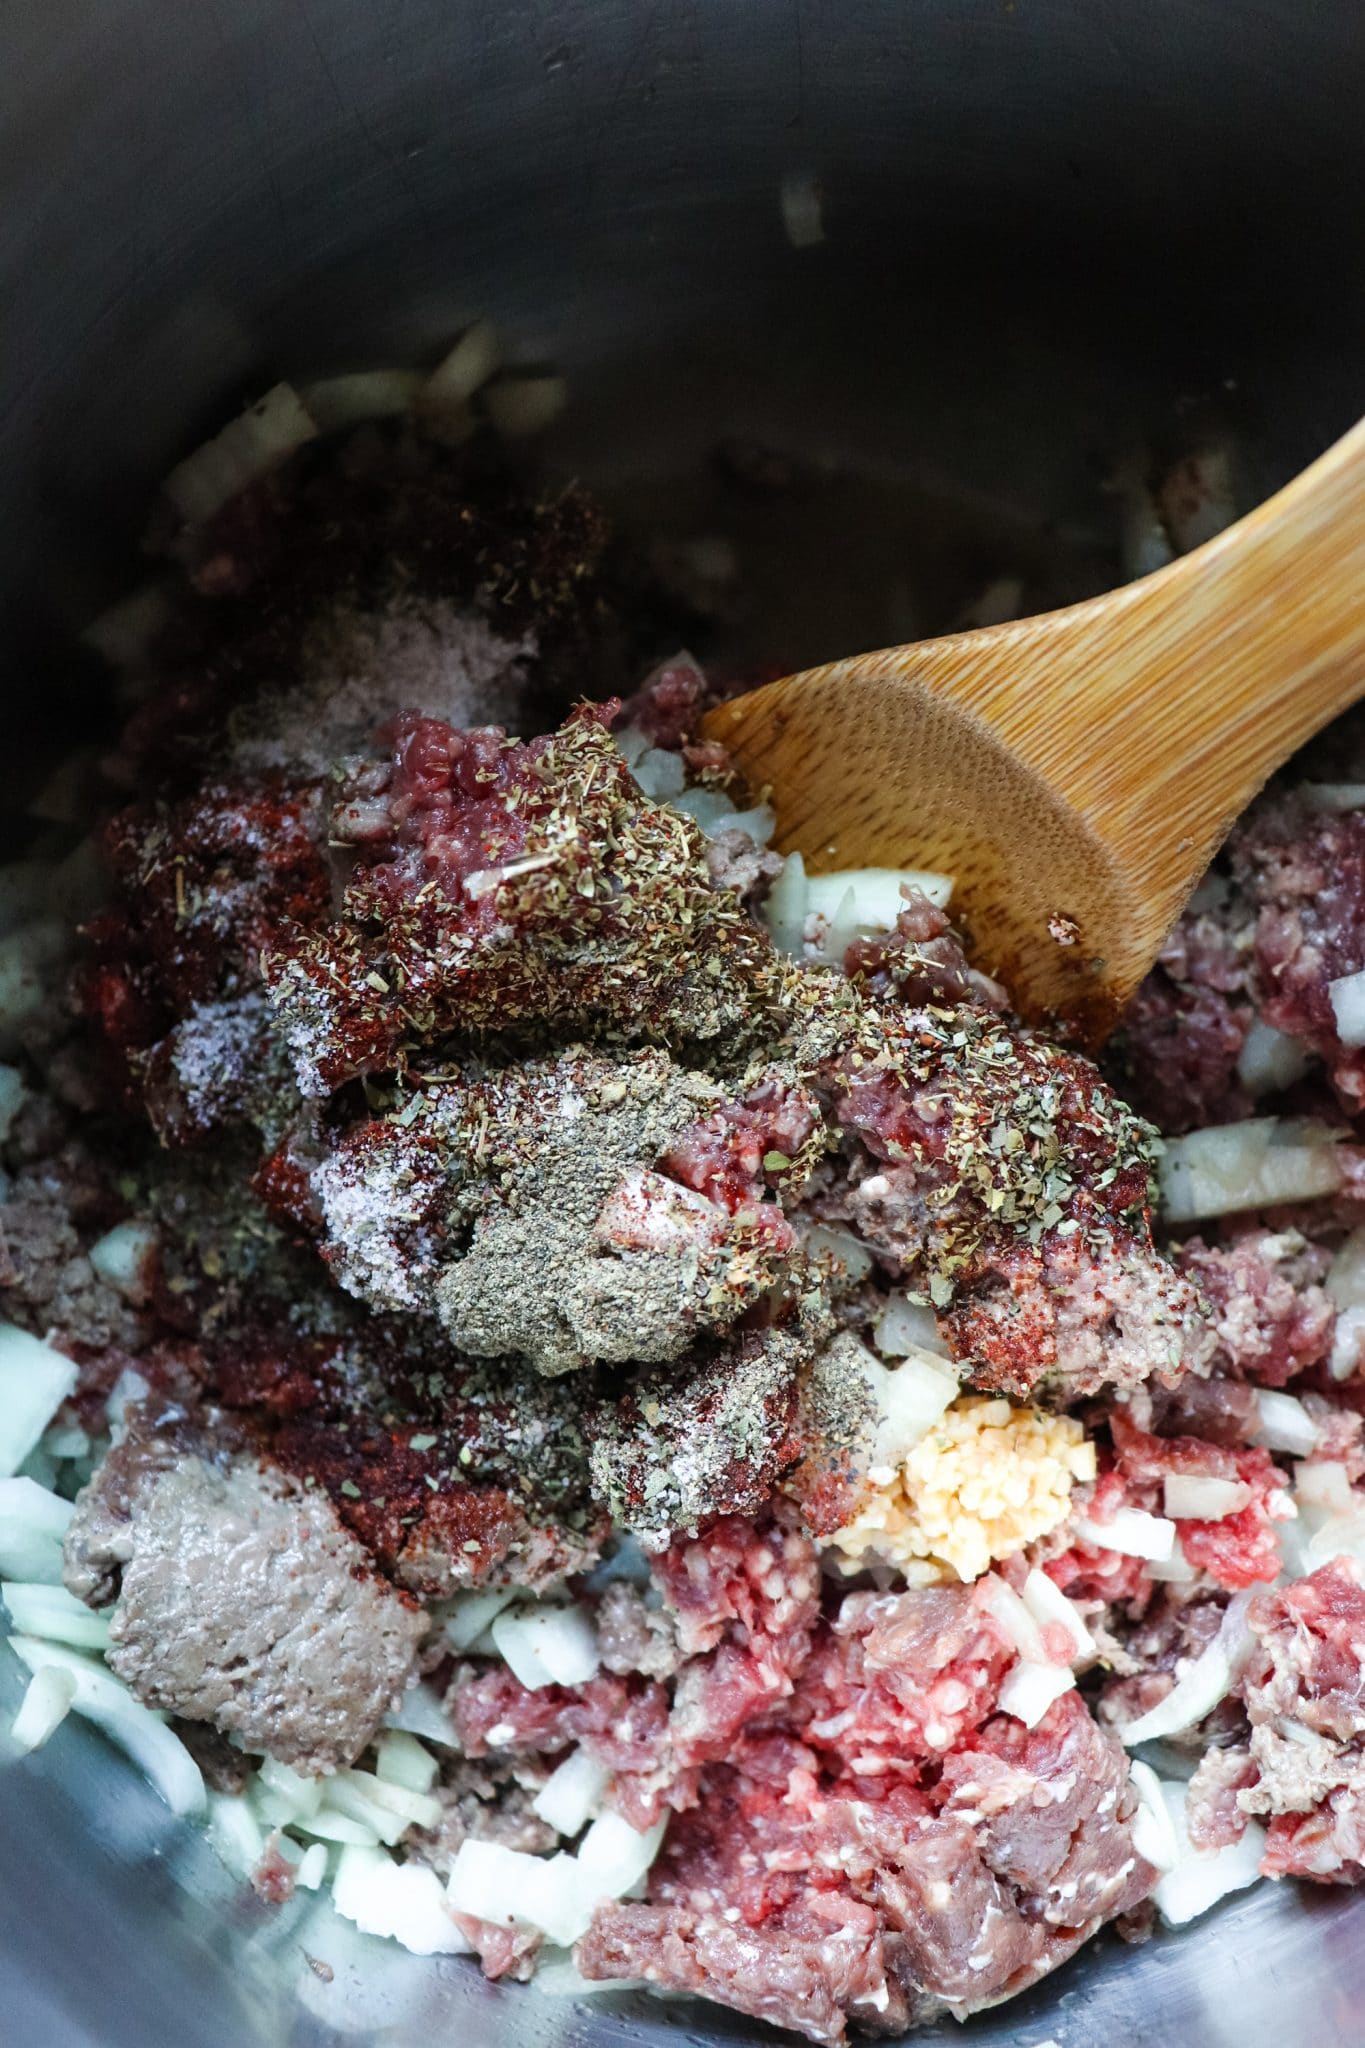 Ground venison, onion, and zucchini in a large pot being stirred by a wooden spoon